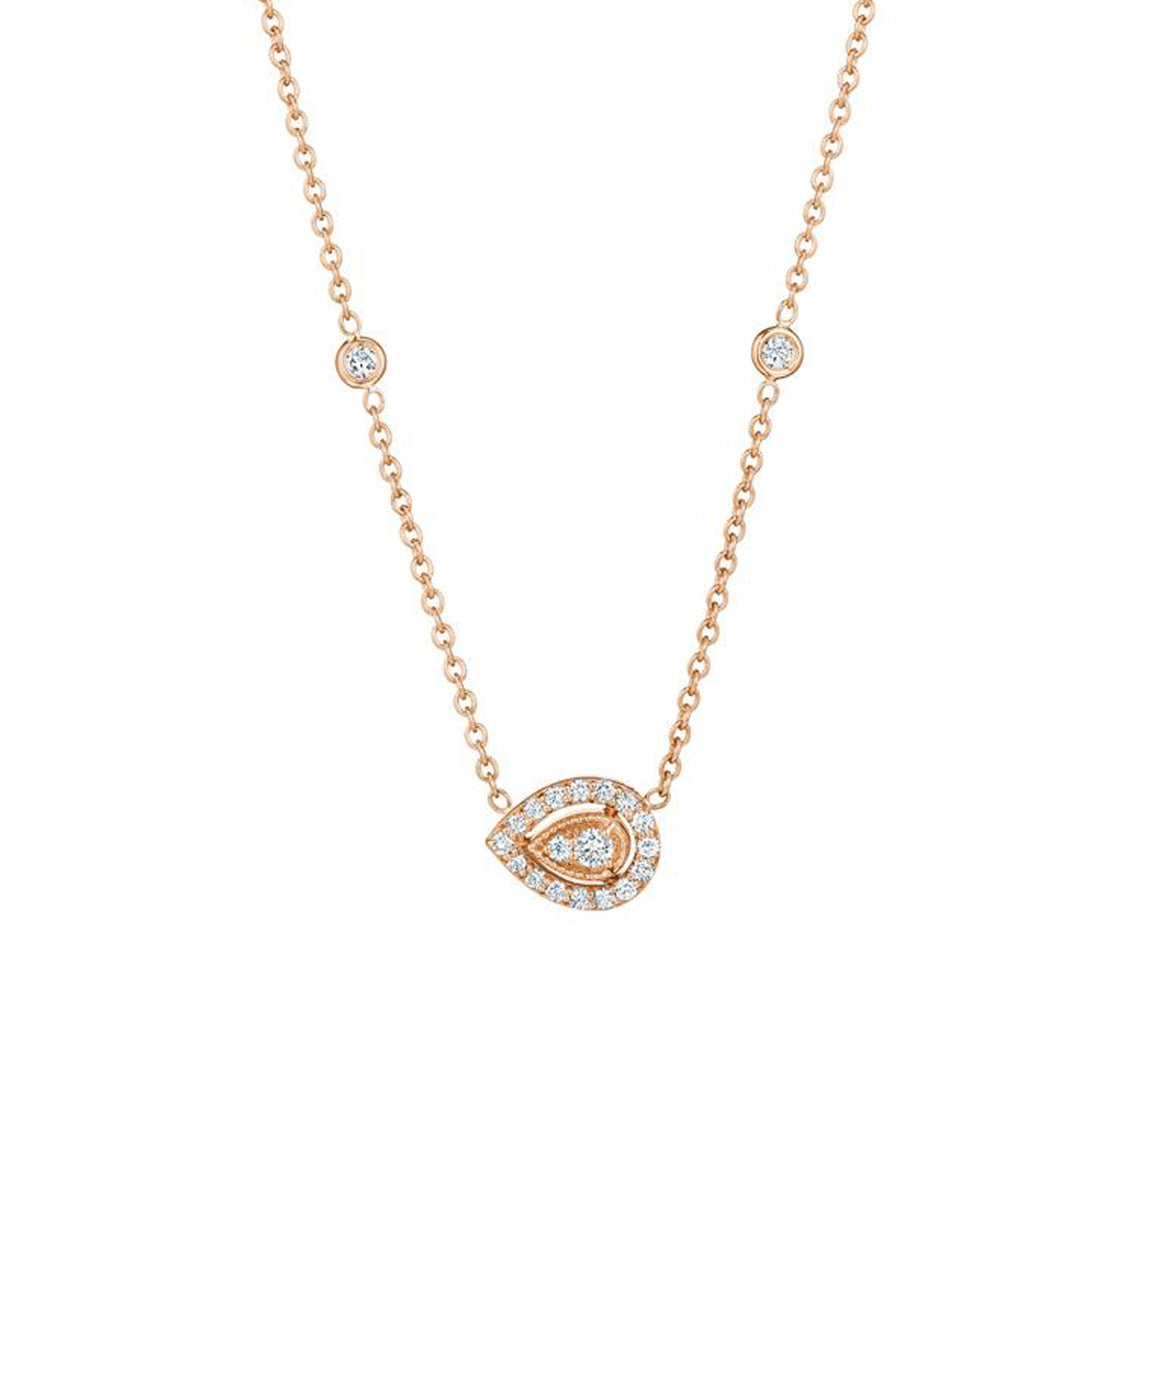 "Setting the pear-shaped diamond makes this necklace modern. The pear-shaped diamond is set in a diamond frame. Total diamond weight is .44 carat. The pendant is 1/2"" across and hangs from an 18"" chain."